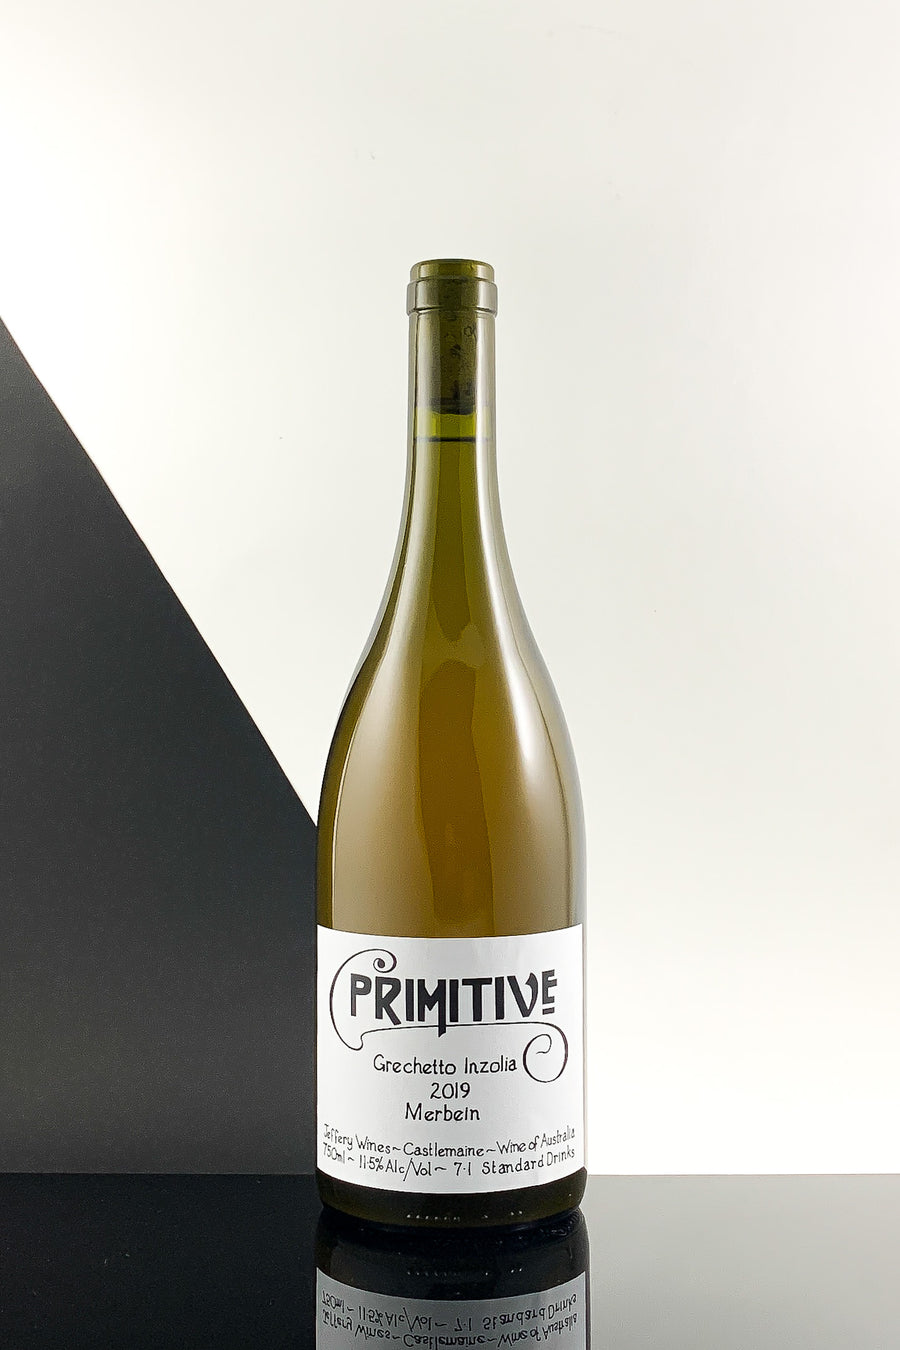 Jeffery Wines Primitive Grechetto Inzolia 2019